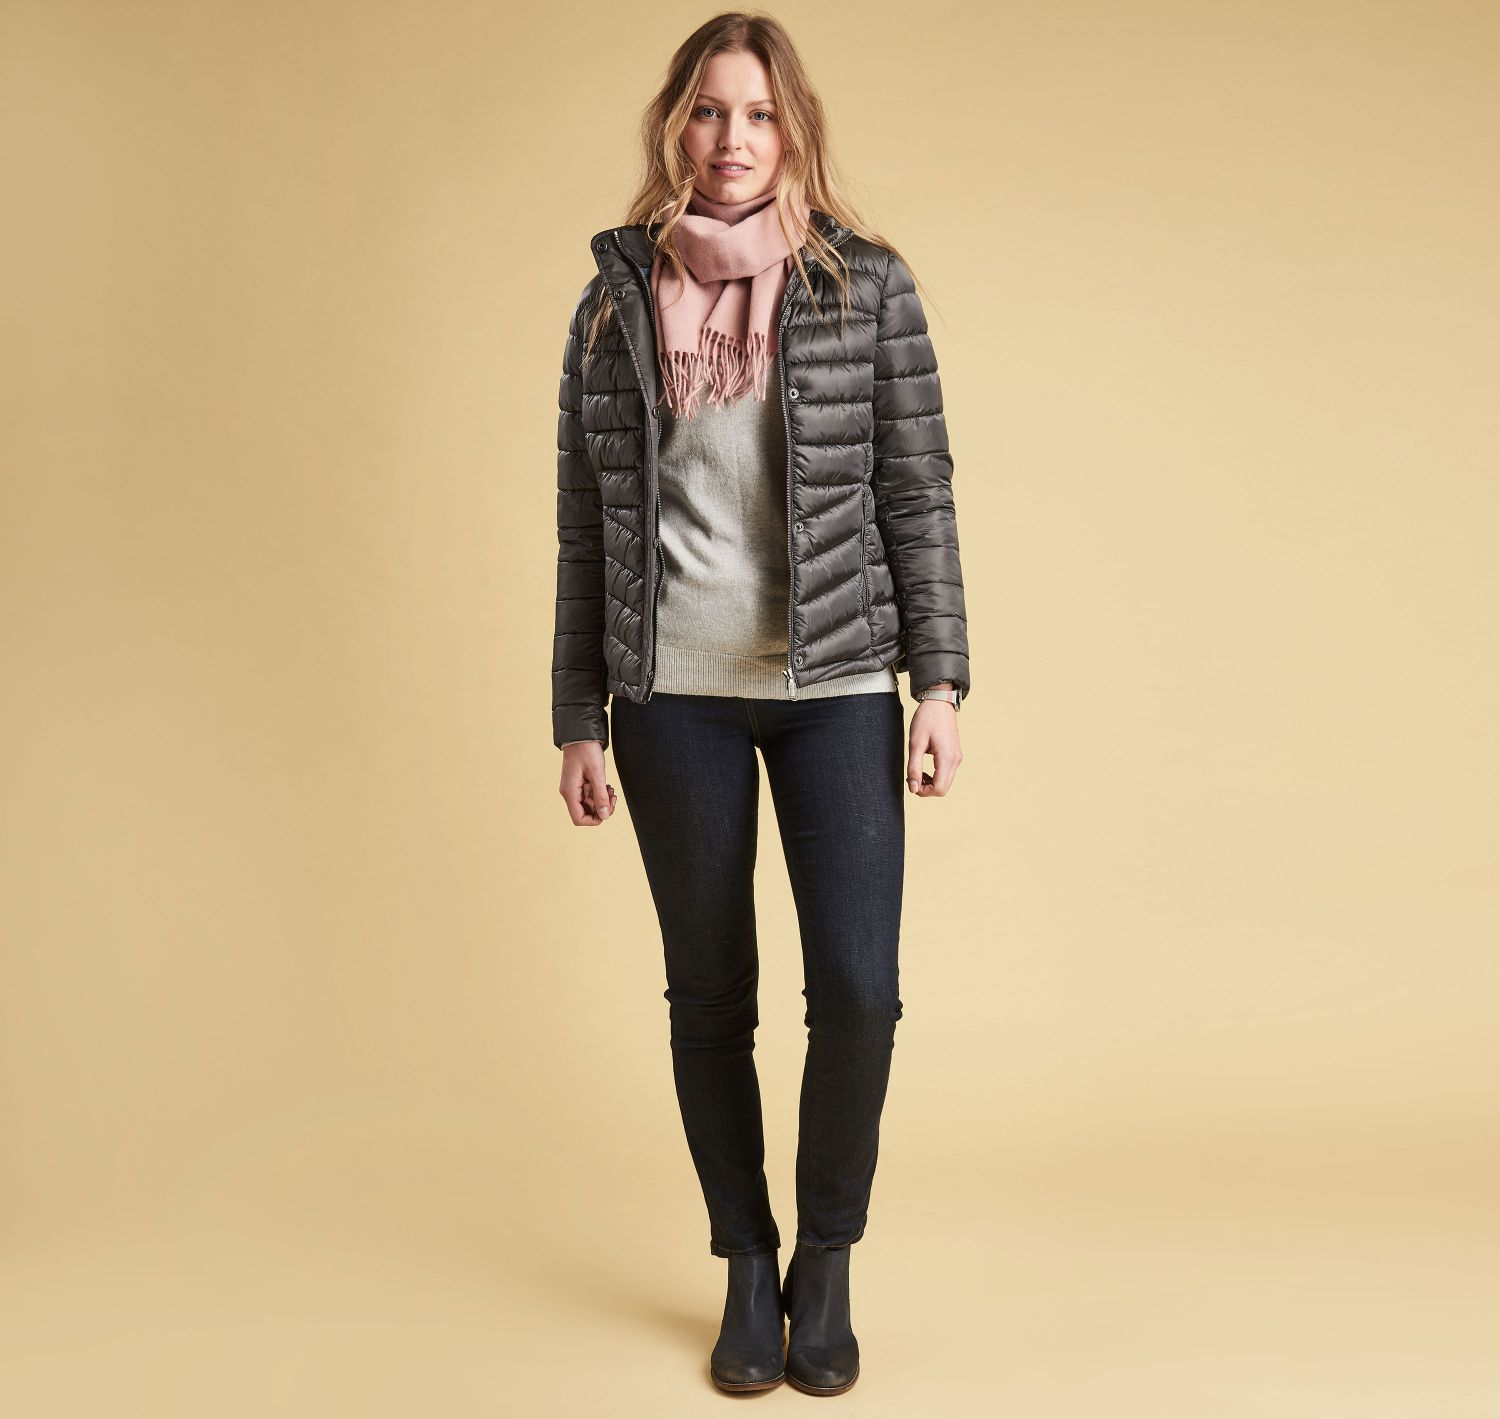 Barbour Barbour Vartersay Quilted Jacket Ash grey Barbour Lifestyle: from the Classic capsule